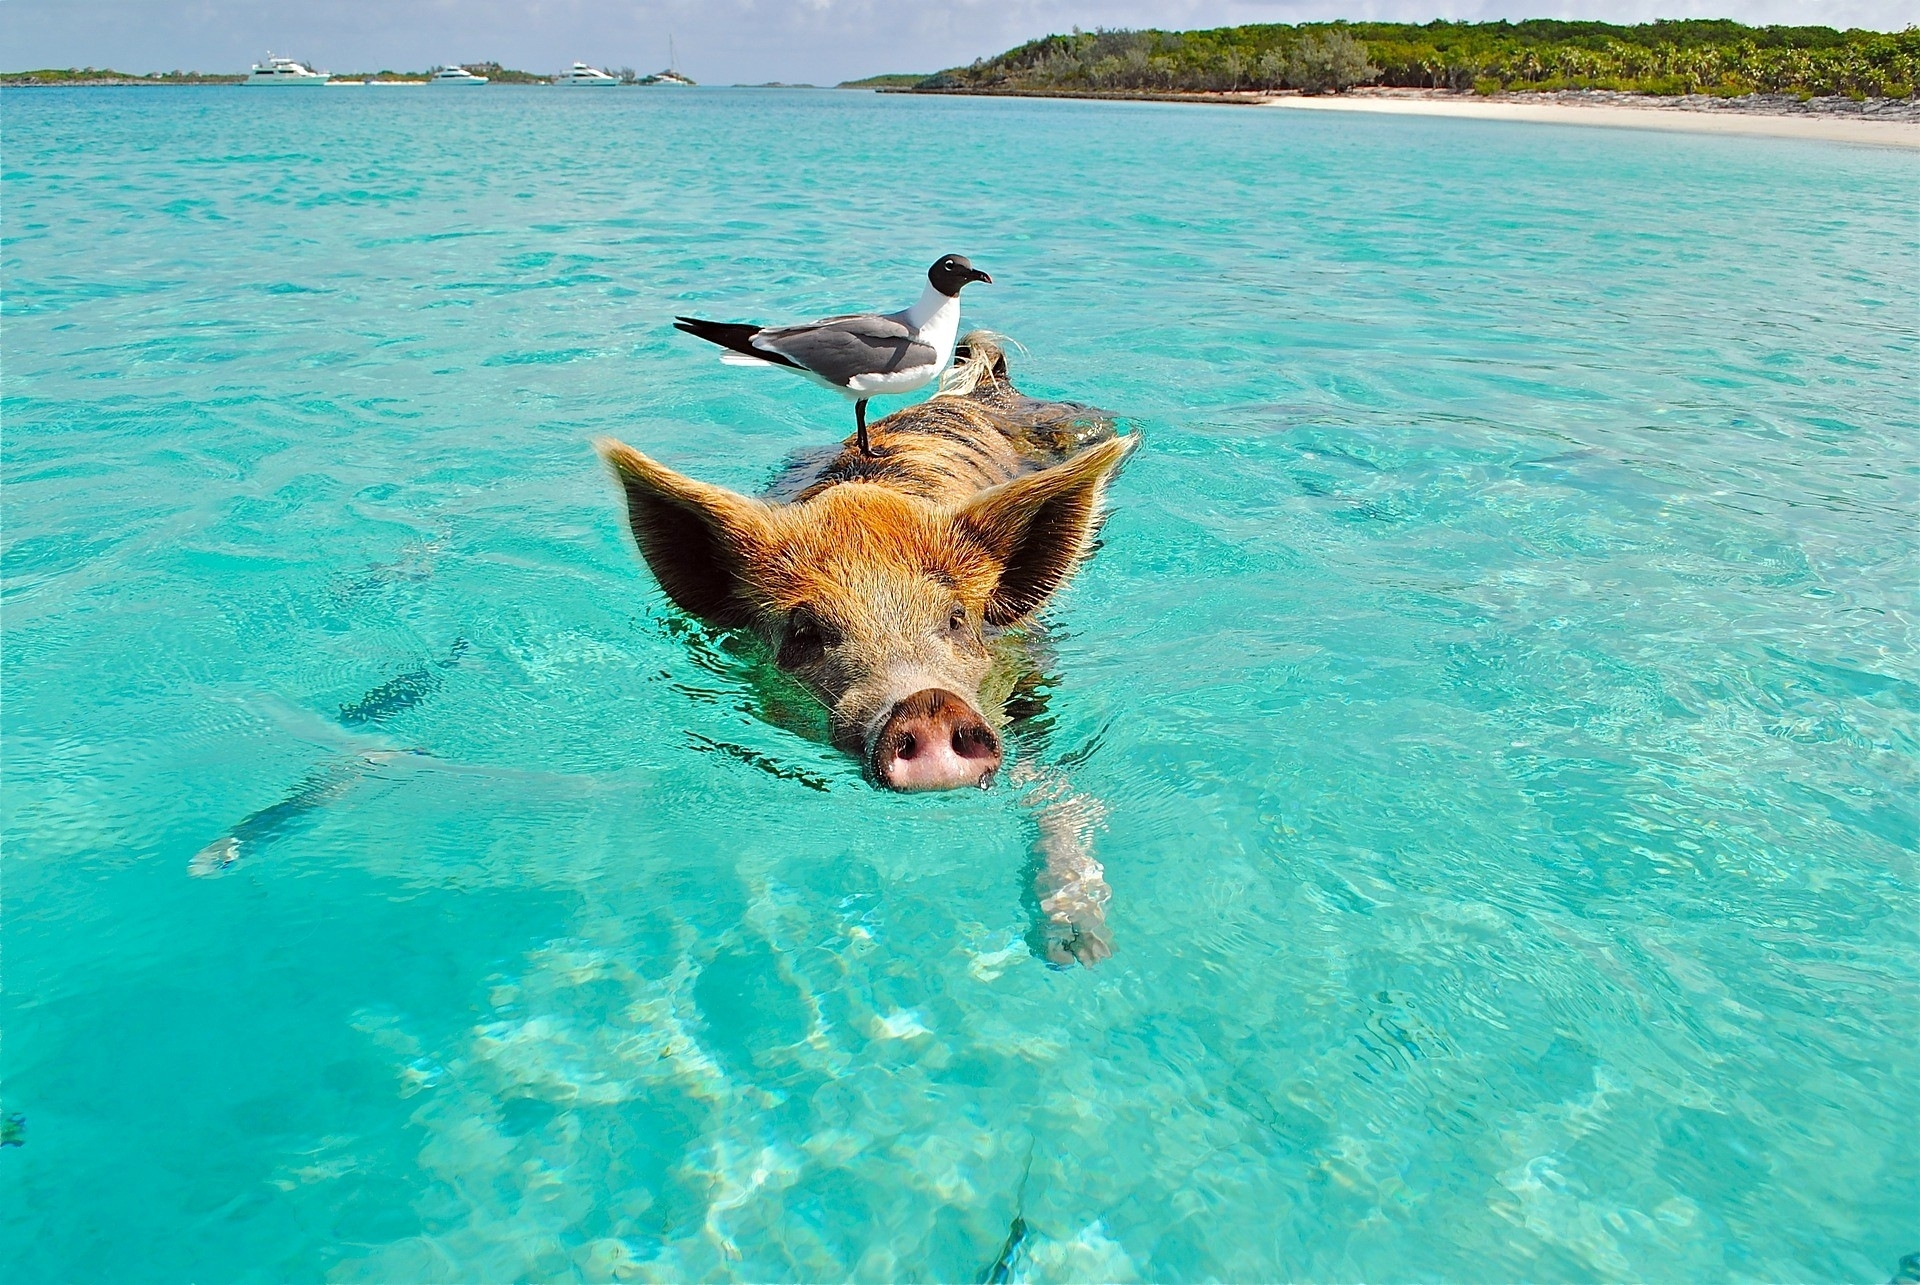 How To Take A Day Trip To The Bahamas From Miami - Wheres My with regard to Traveling To The Bahamas From Florida